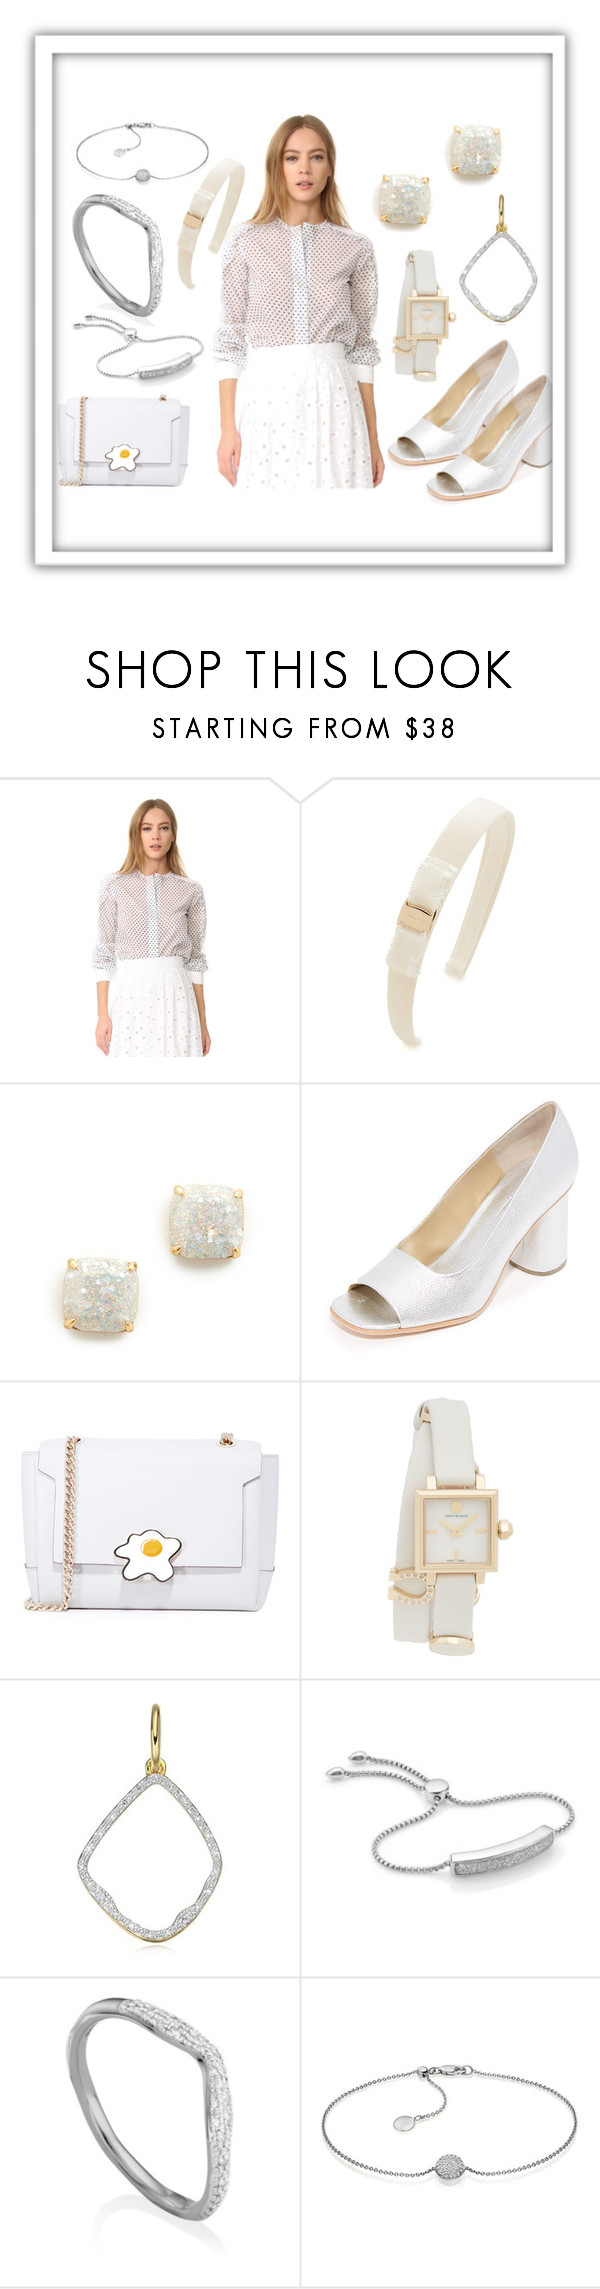 """Peace White"" by paige-brrian ❤ liked on Polyvore featuring Amelia Toro, Salvatore Ferragamo, Kate Spade, Rachel Comey, Anya Hindmarch, Tory Burch and Monica Vinader"